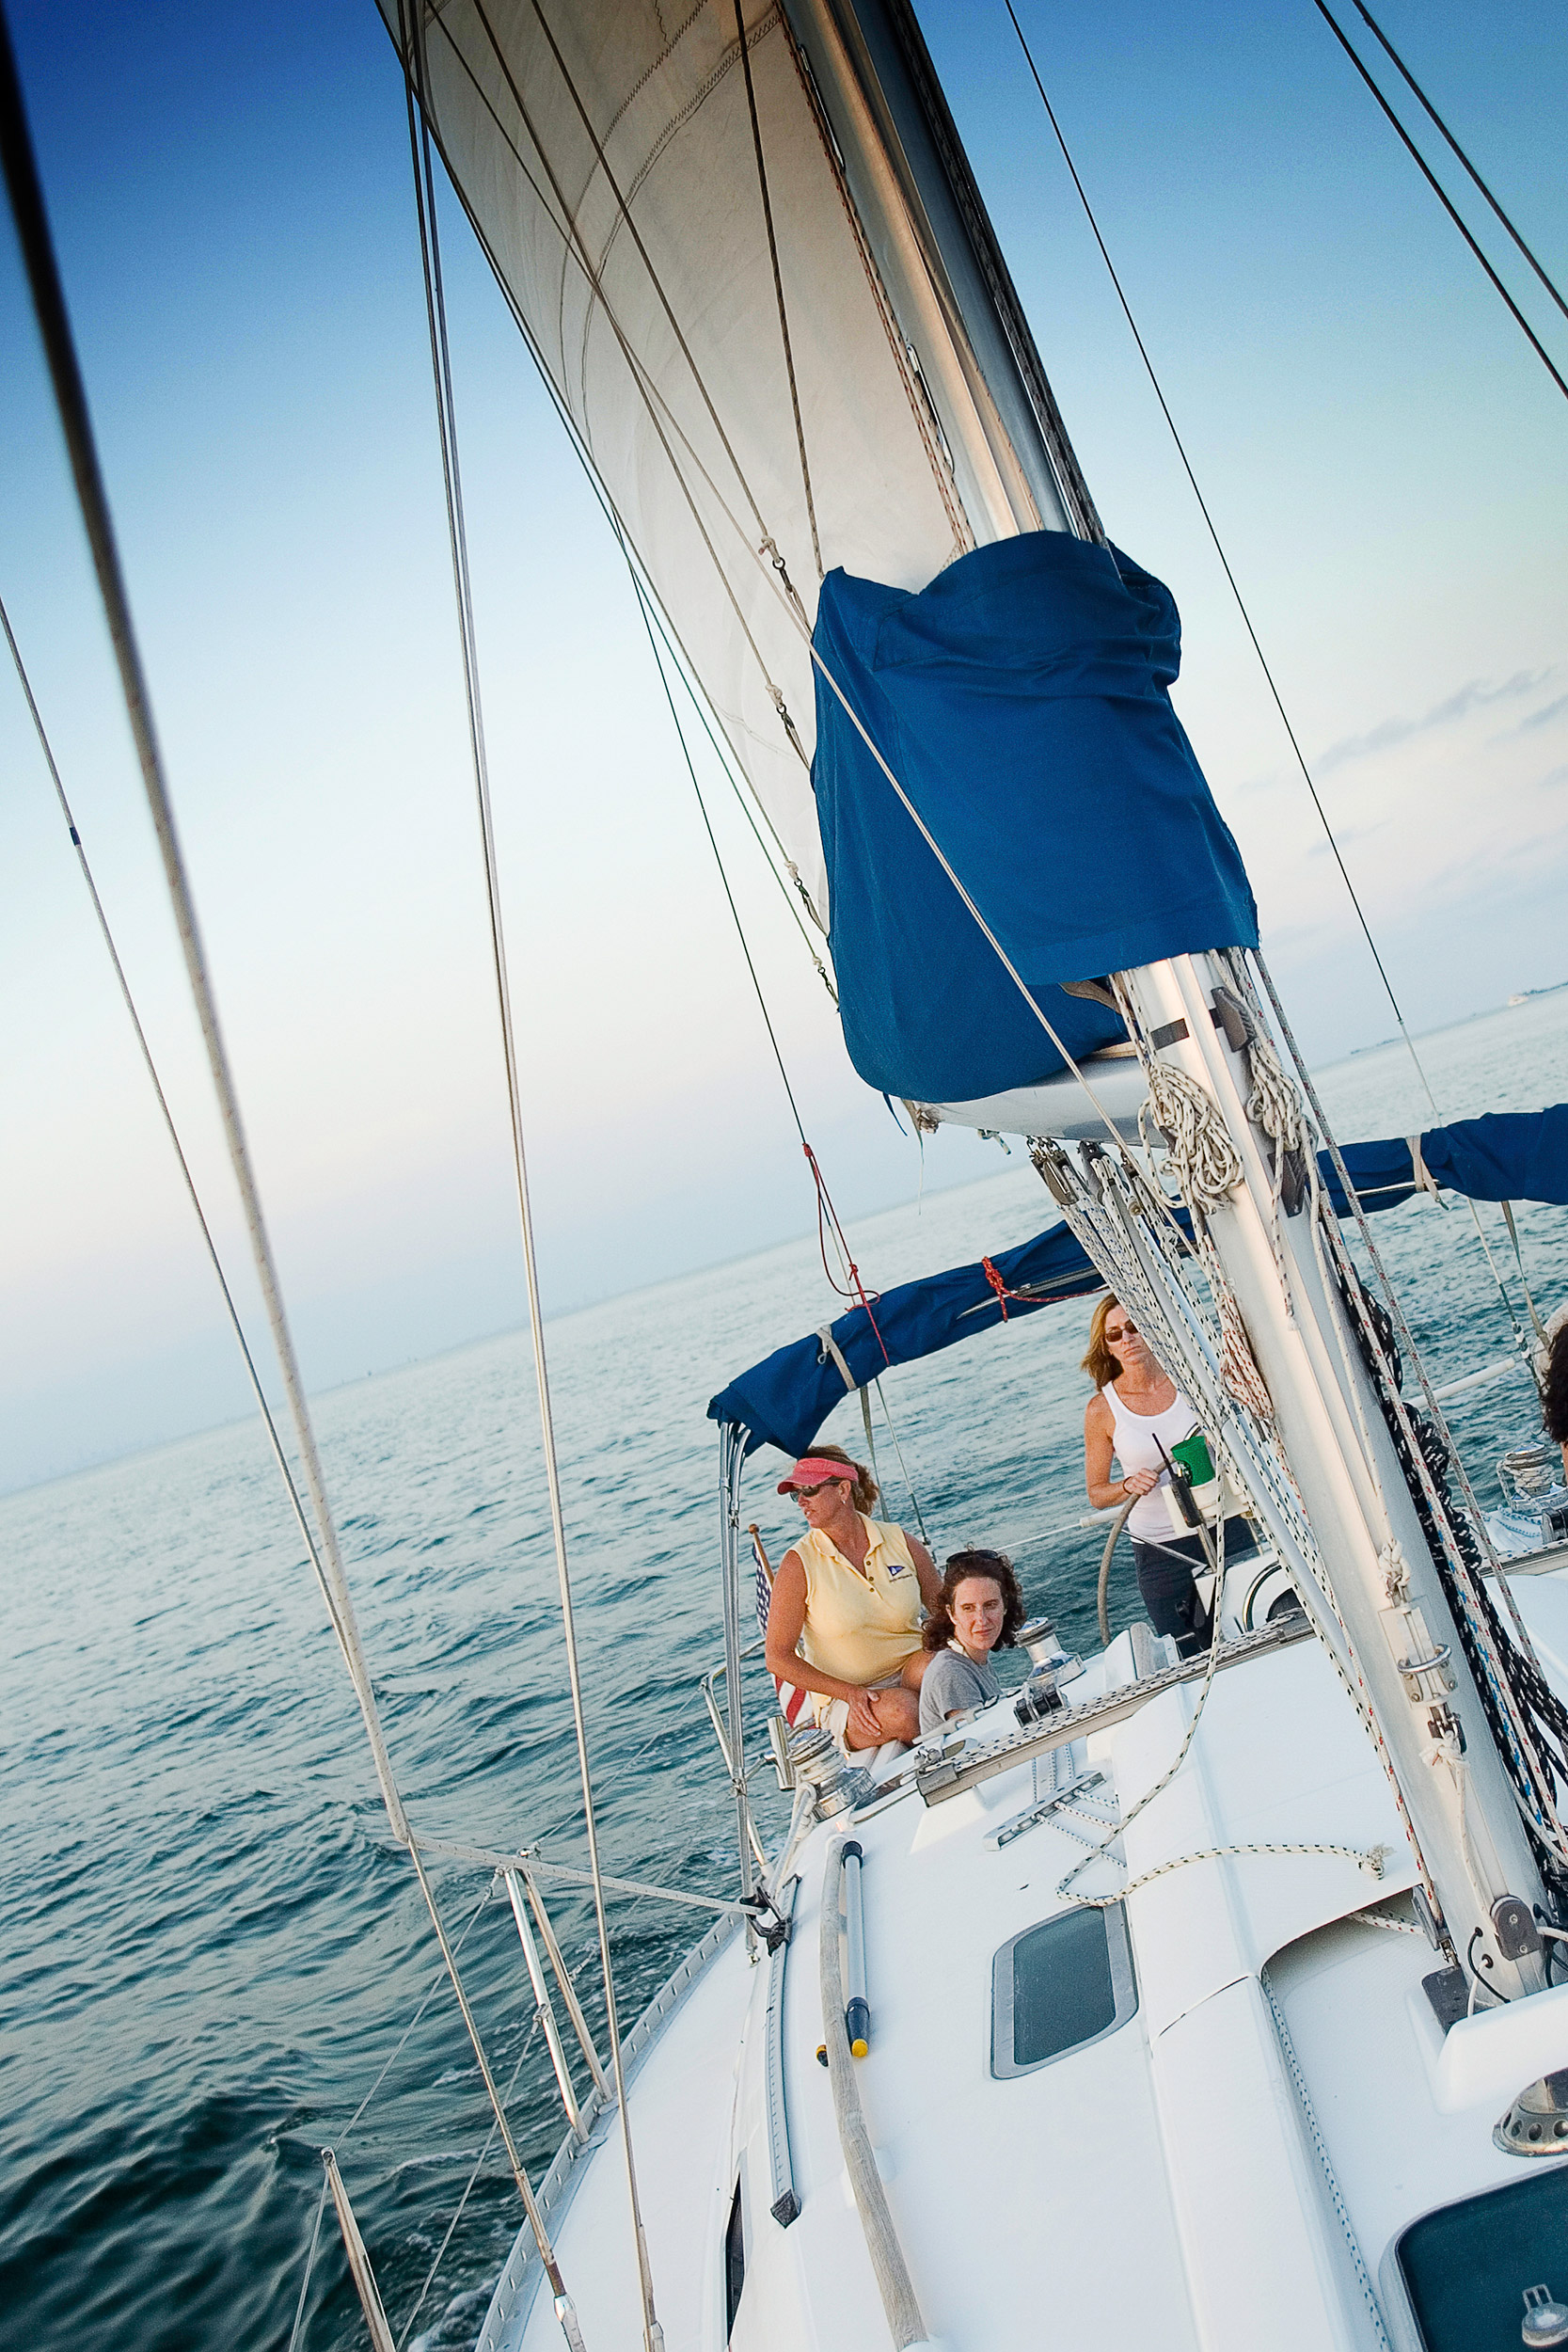 travel_budgettravel_boating_sailing_4467.jpg